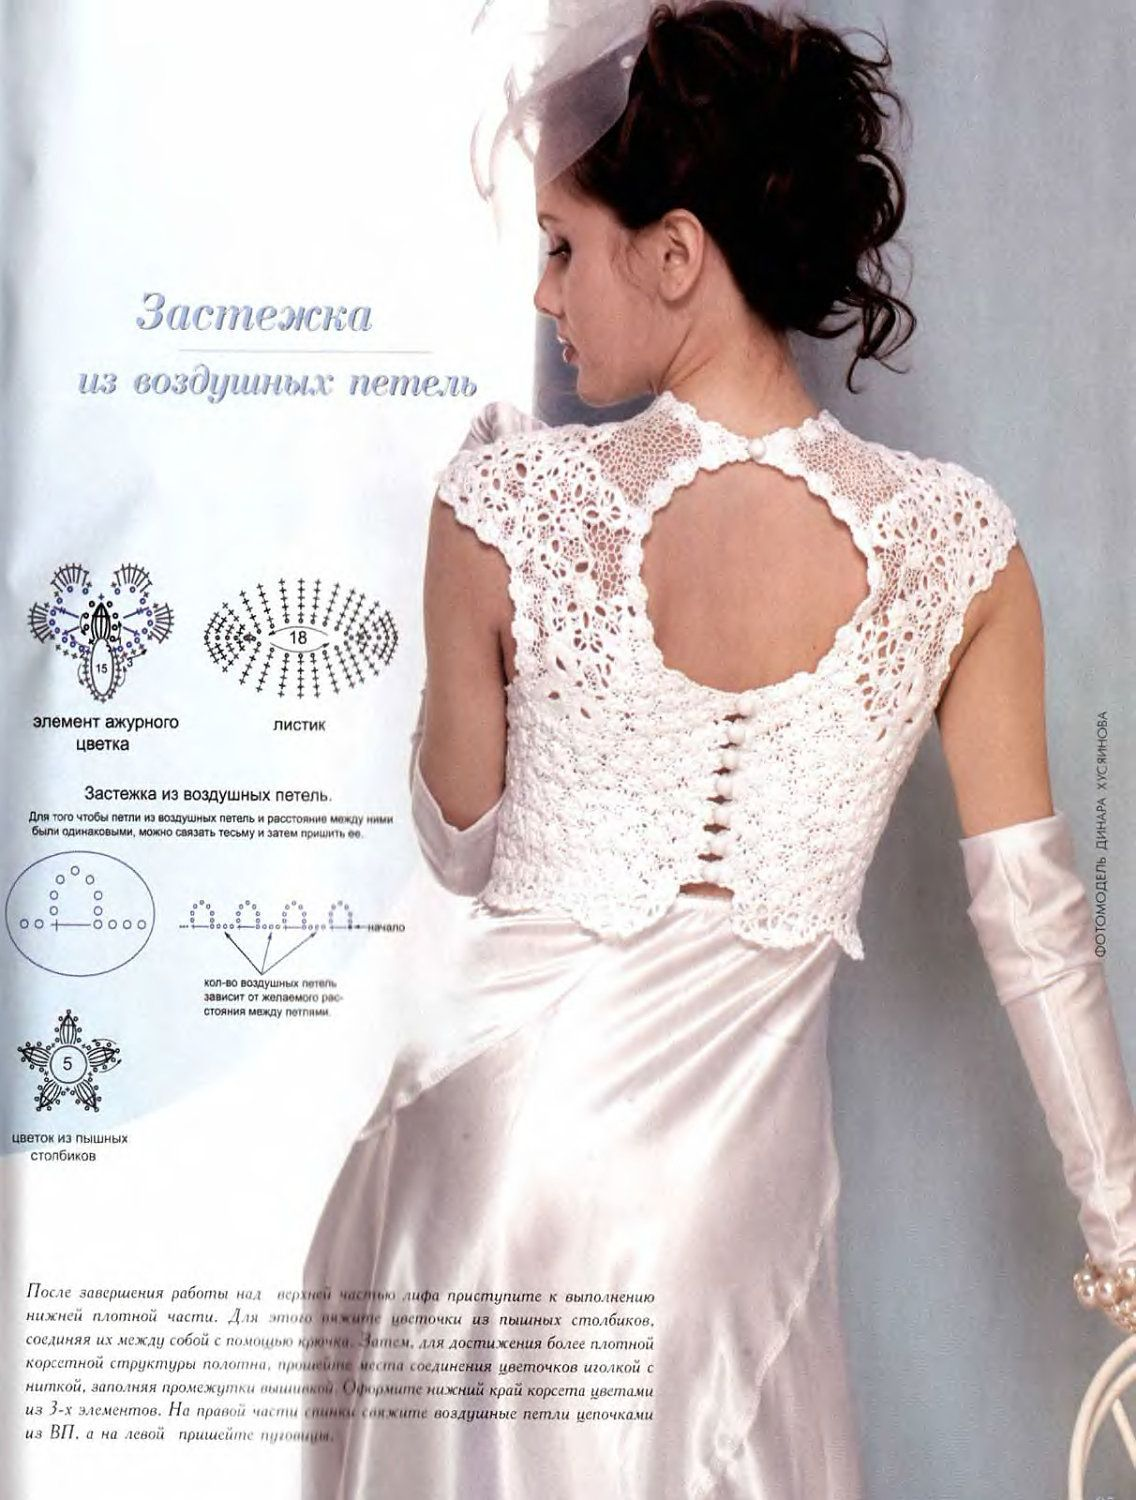 Free wedding dress crochet patterns pinterest free wedding dress crochet patterns bankloansurffo Images